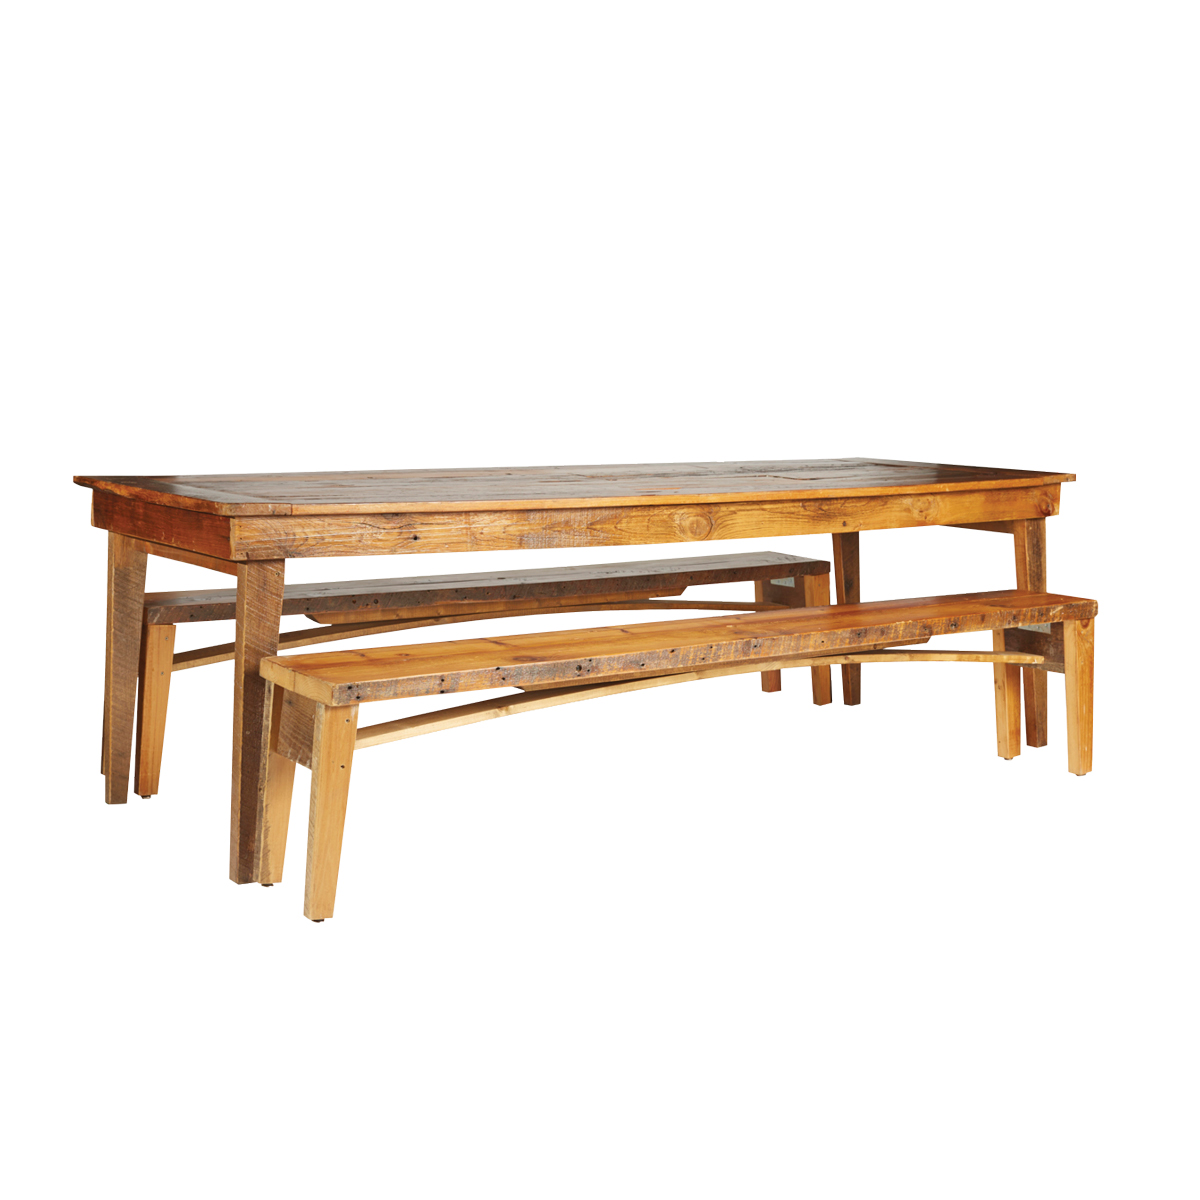 Wood folding table and bench rentals